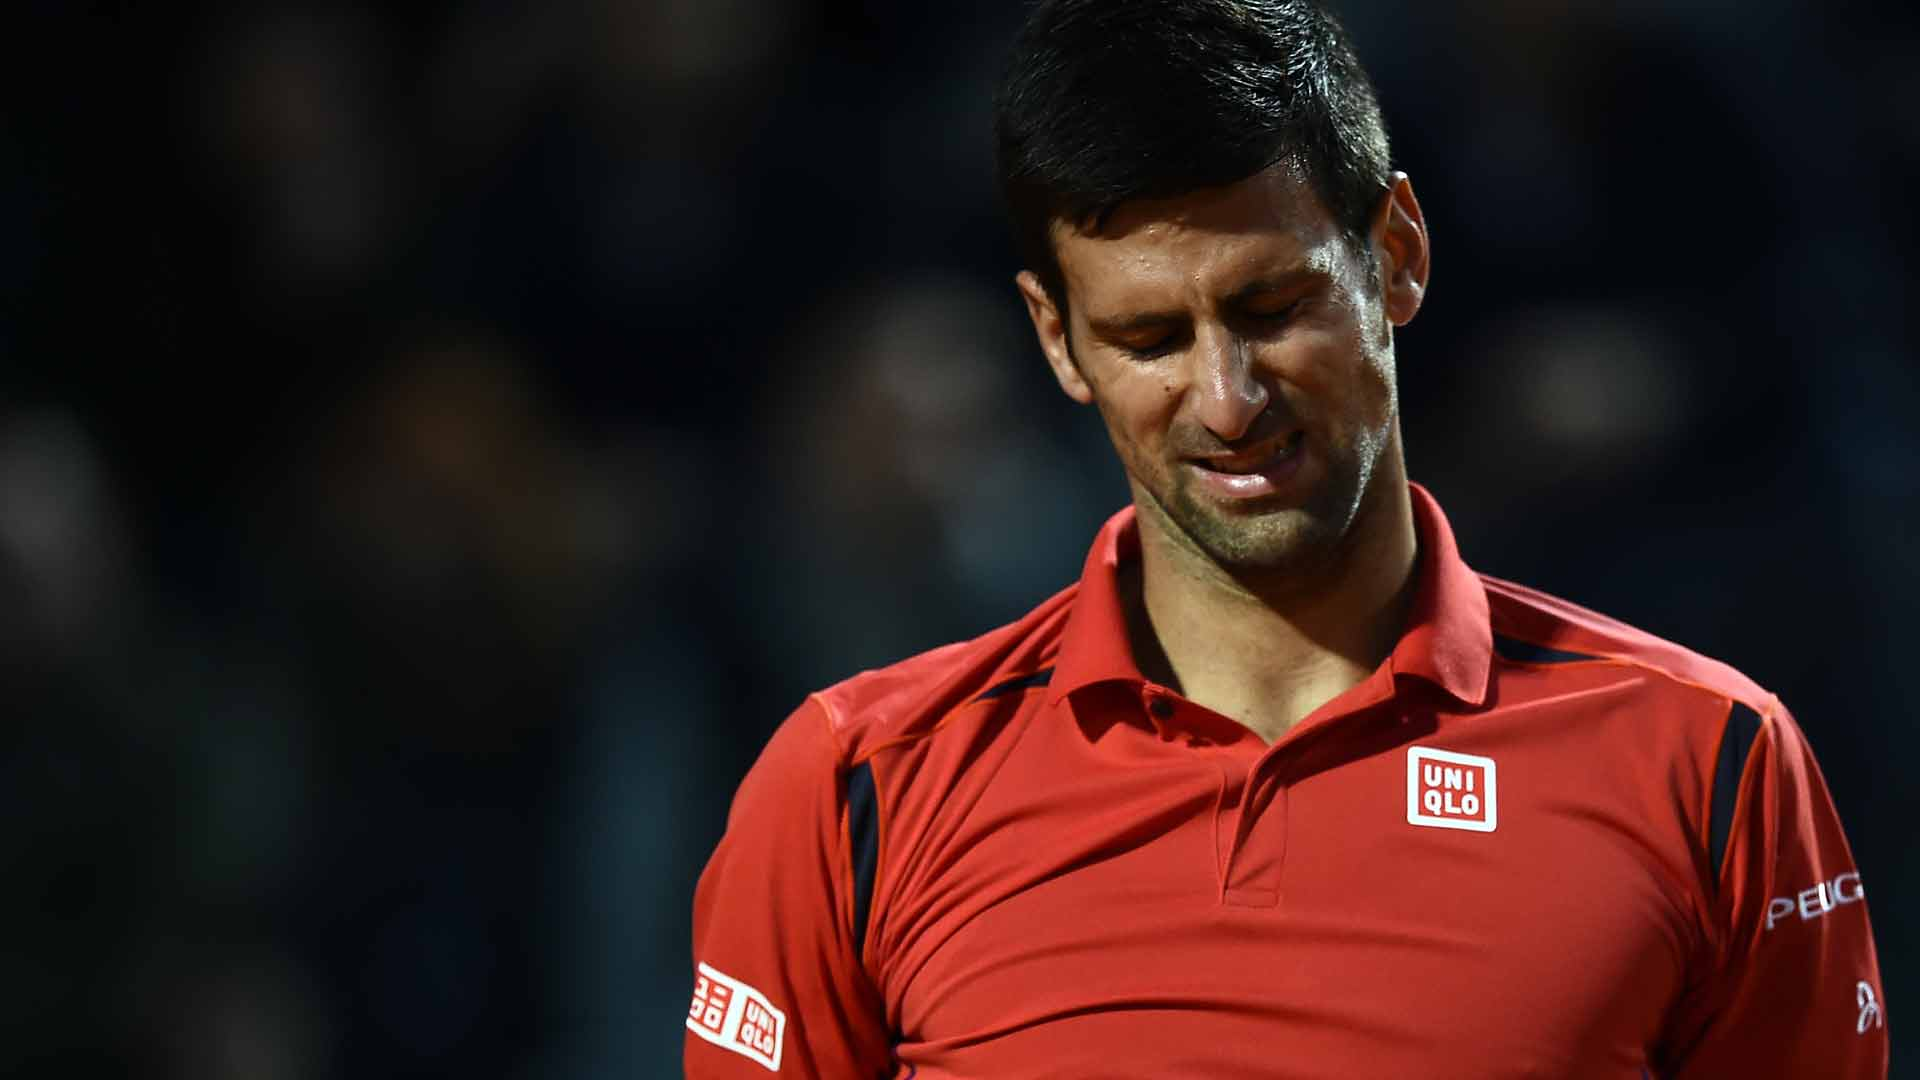 Novak Djokovic believes his minor ankle injury won't be an issue for Sunday's championship match against Andy Murray.